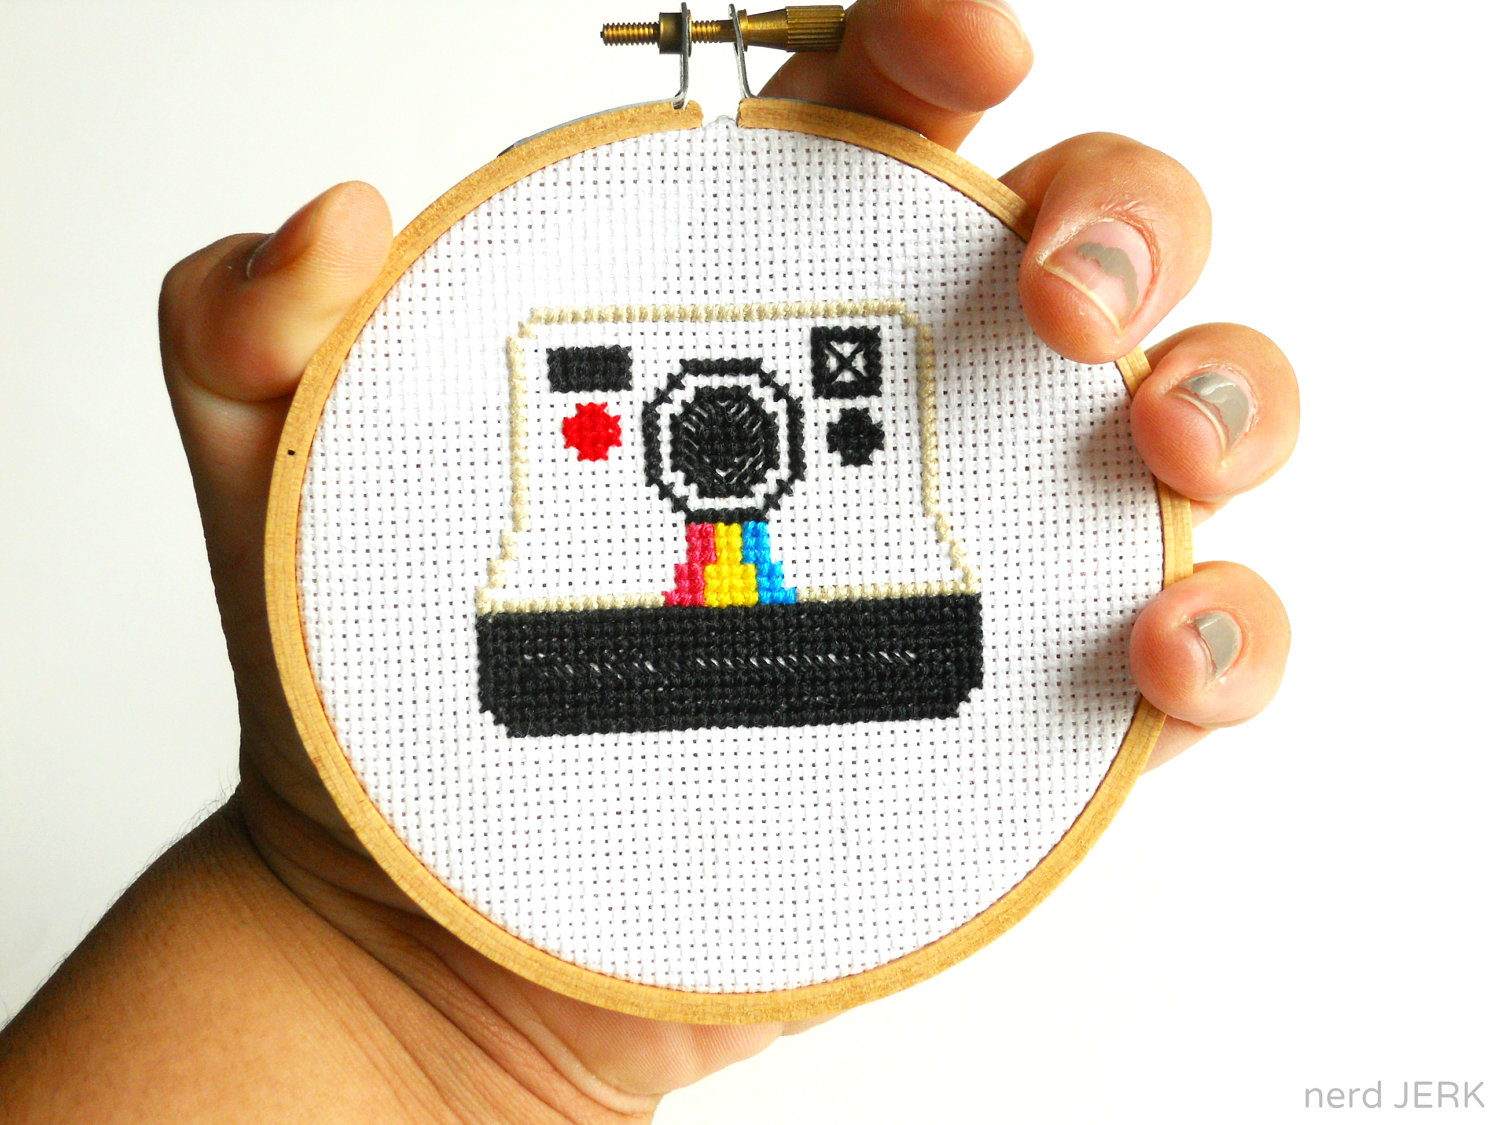 b810c9d1a DIY Nerdy Cross-Stitch Kit - POLAROID 005- Complete with Geeky Beginner  Embroidery Tutorial